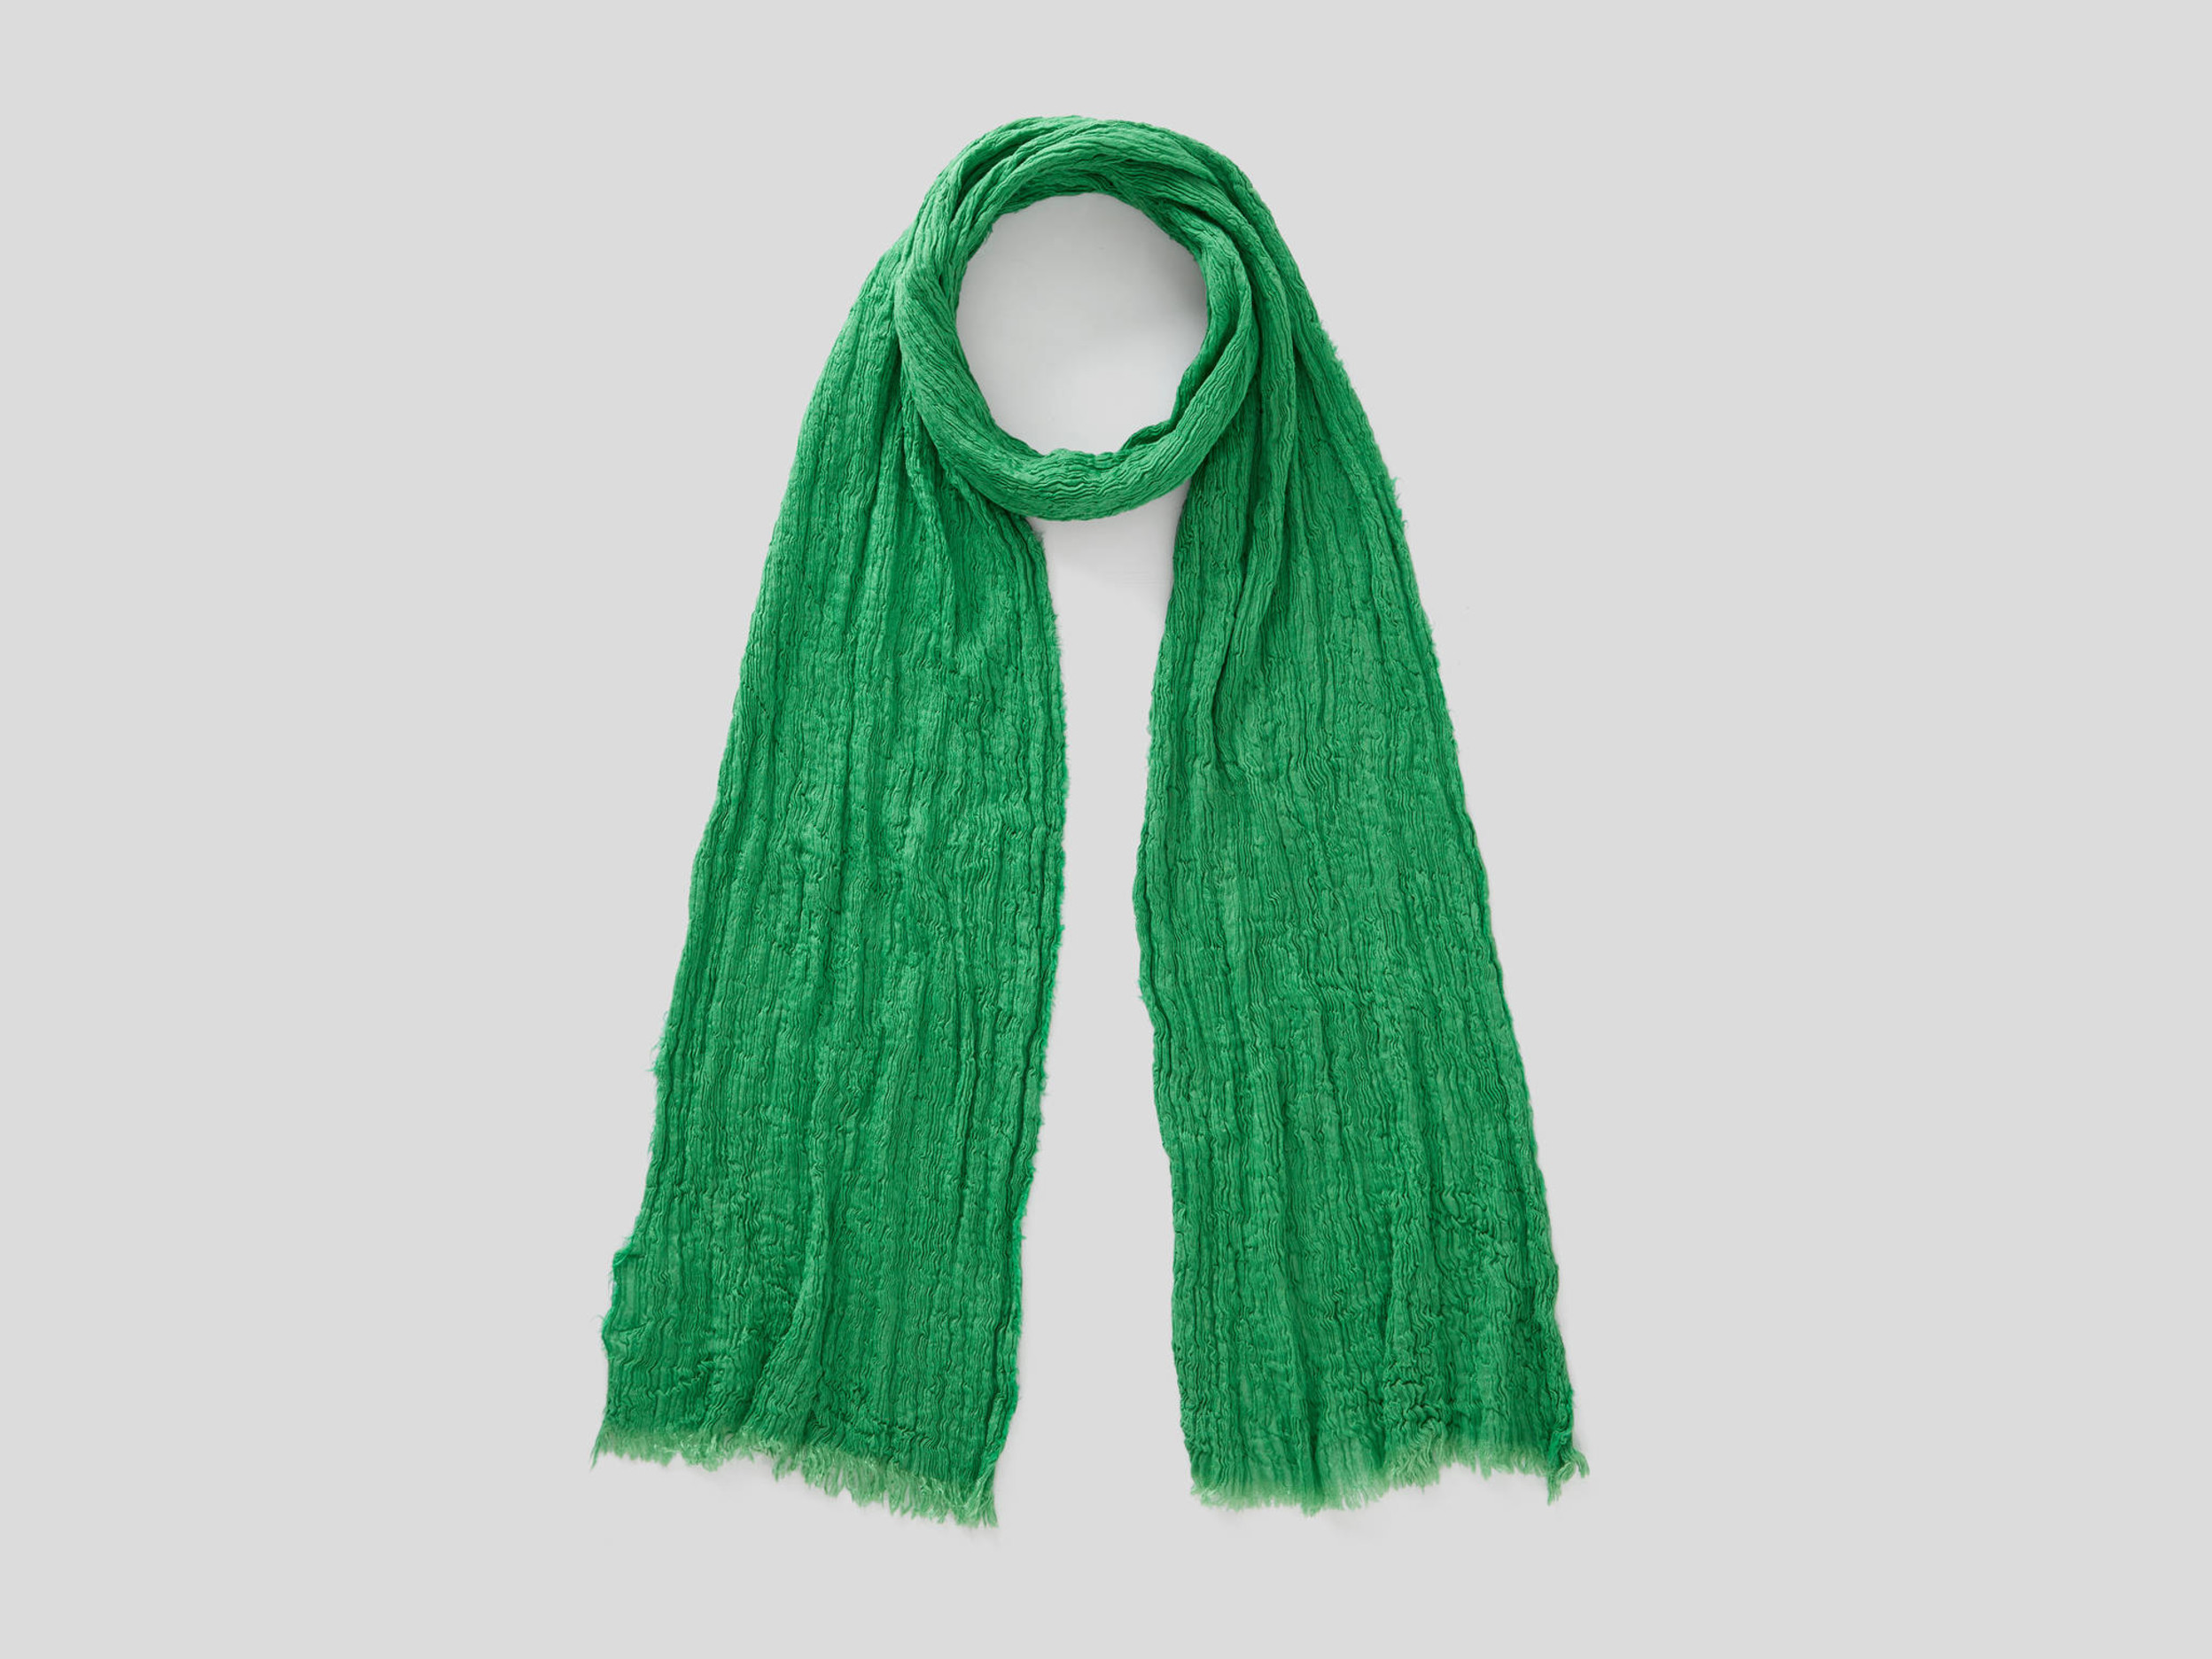 benetton online exclusive, crumpled look scarf, size os, green, women